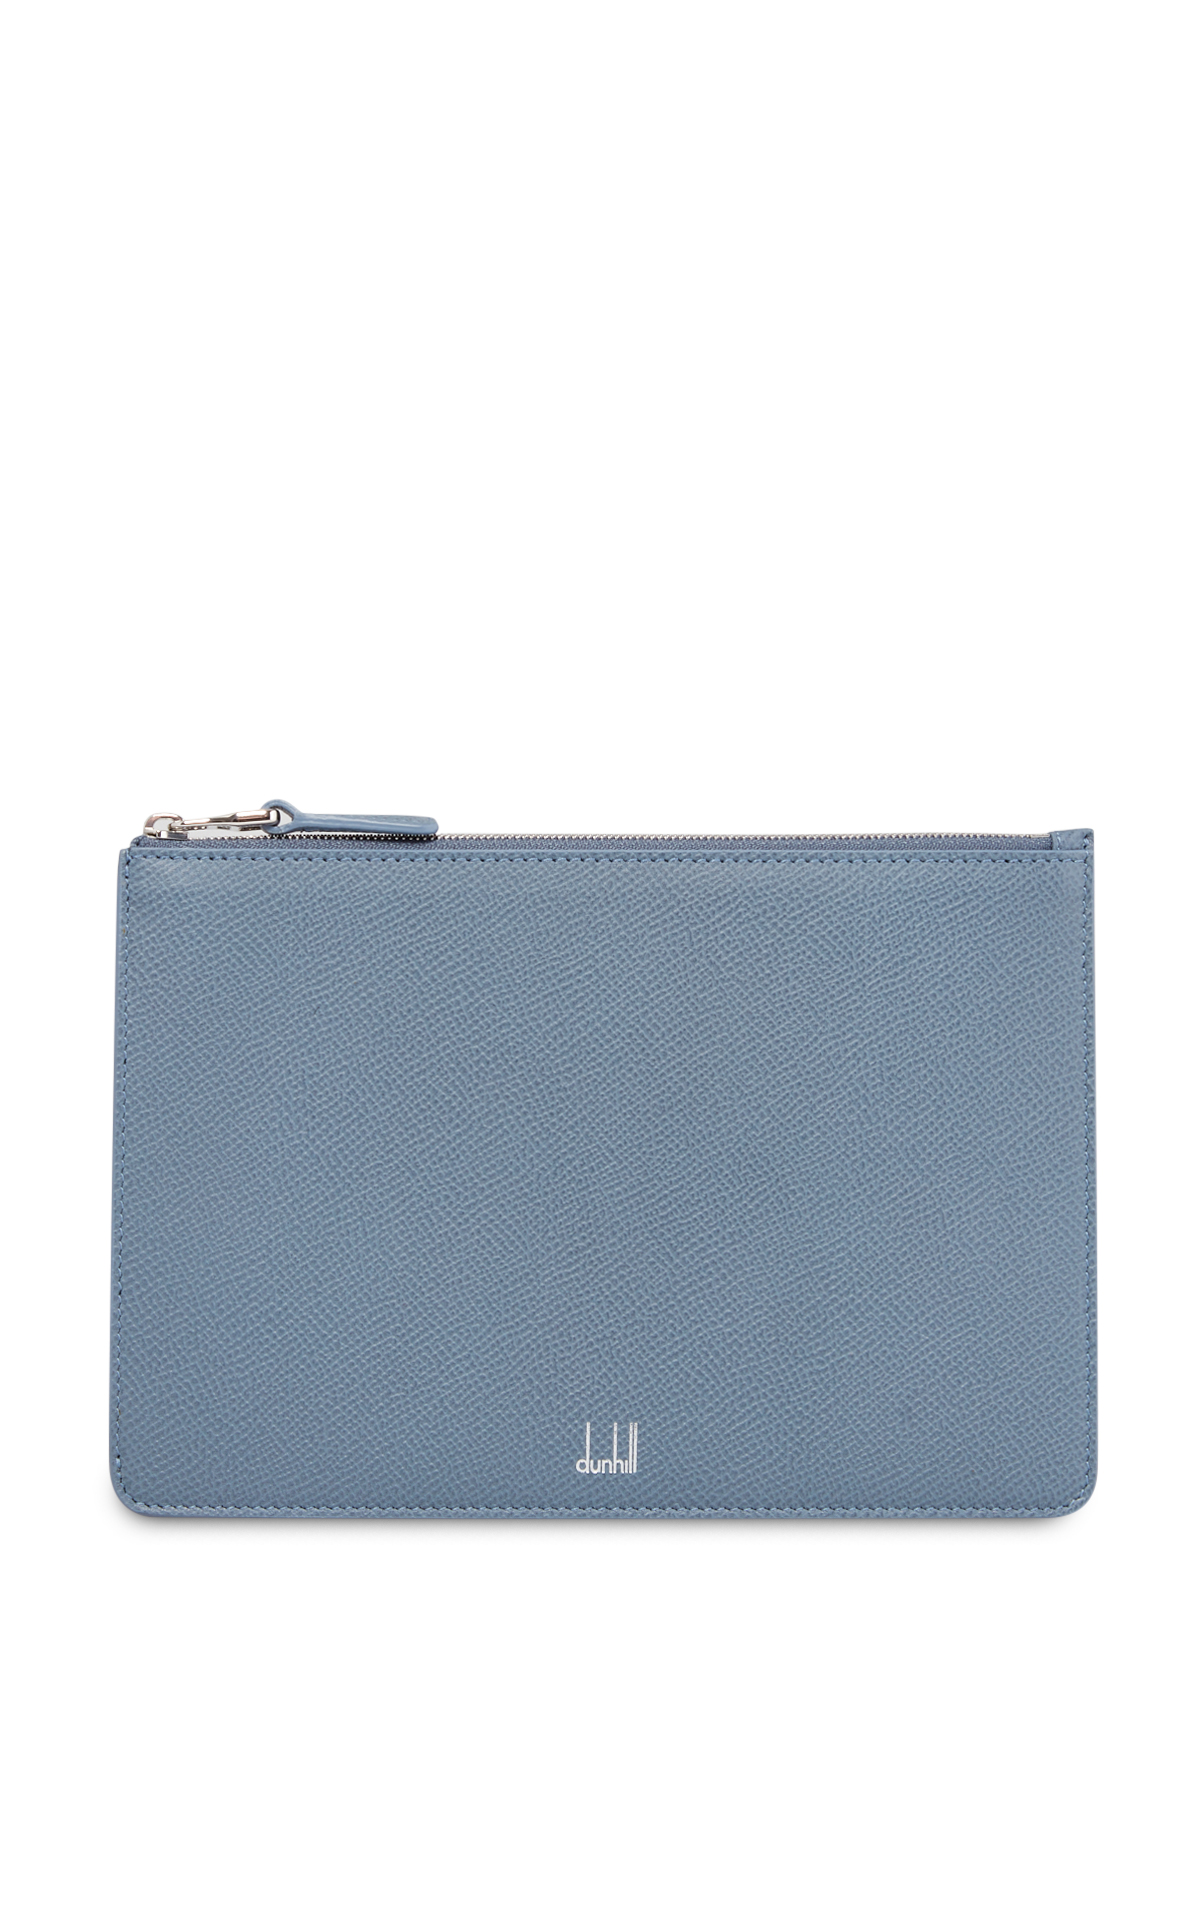 dunhill Tablet pouch*